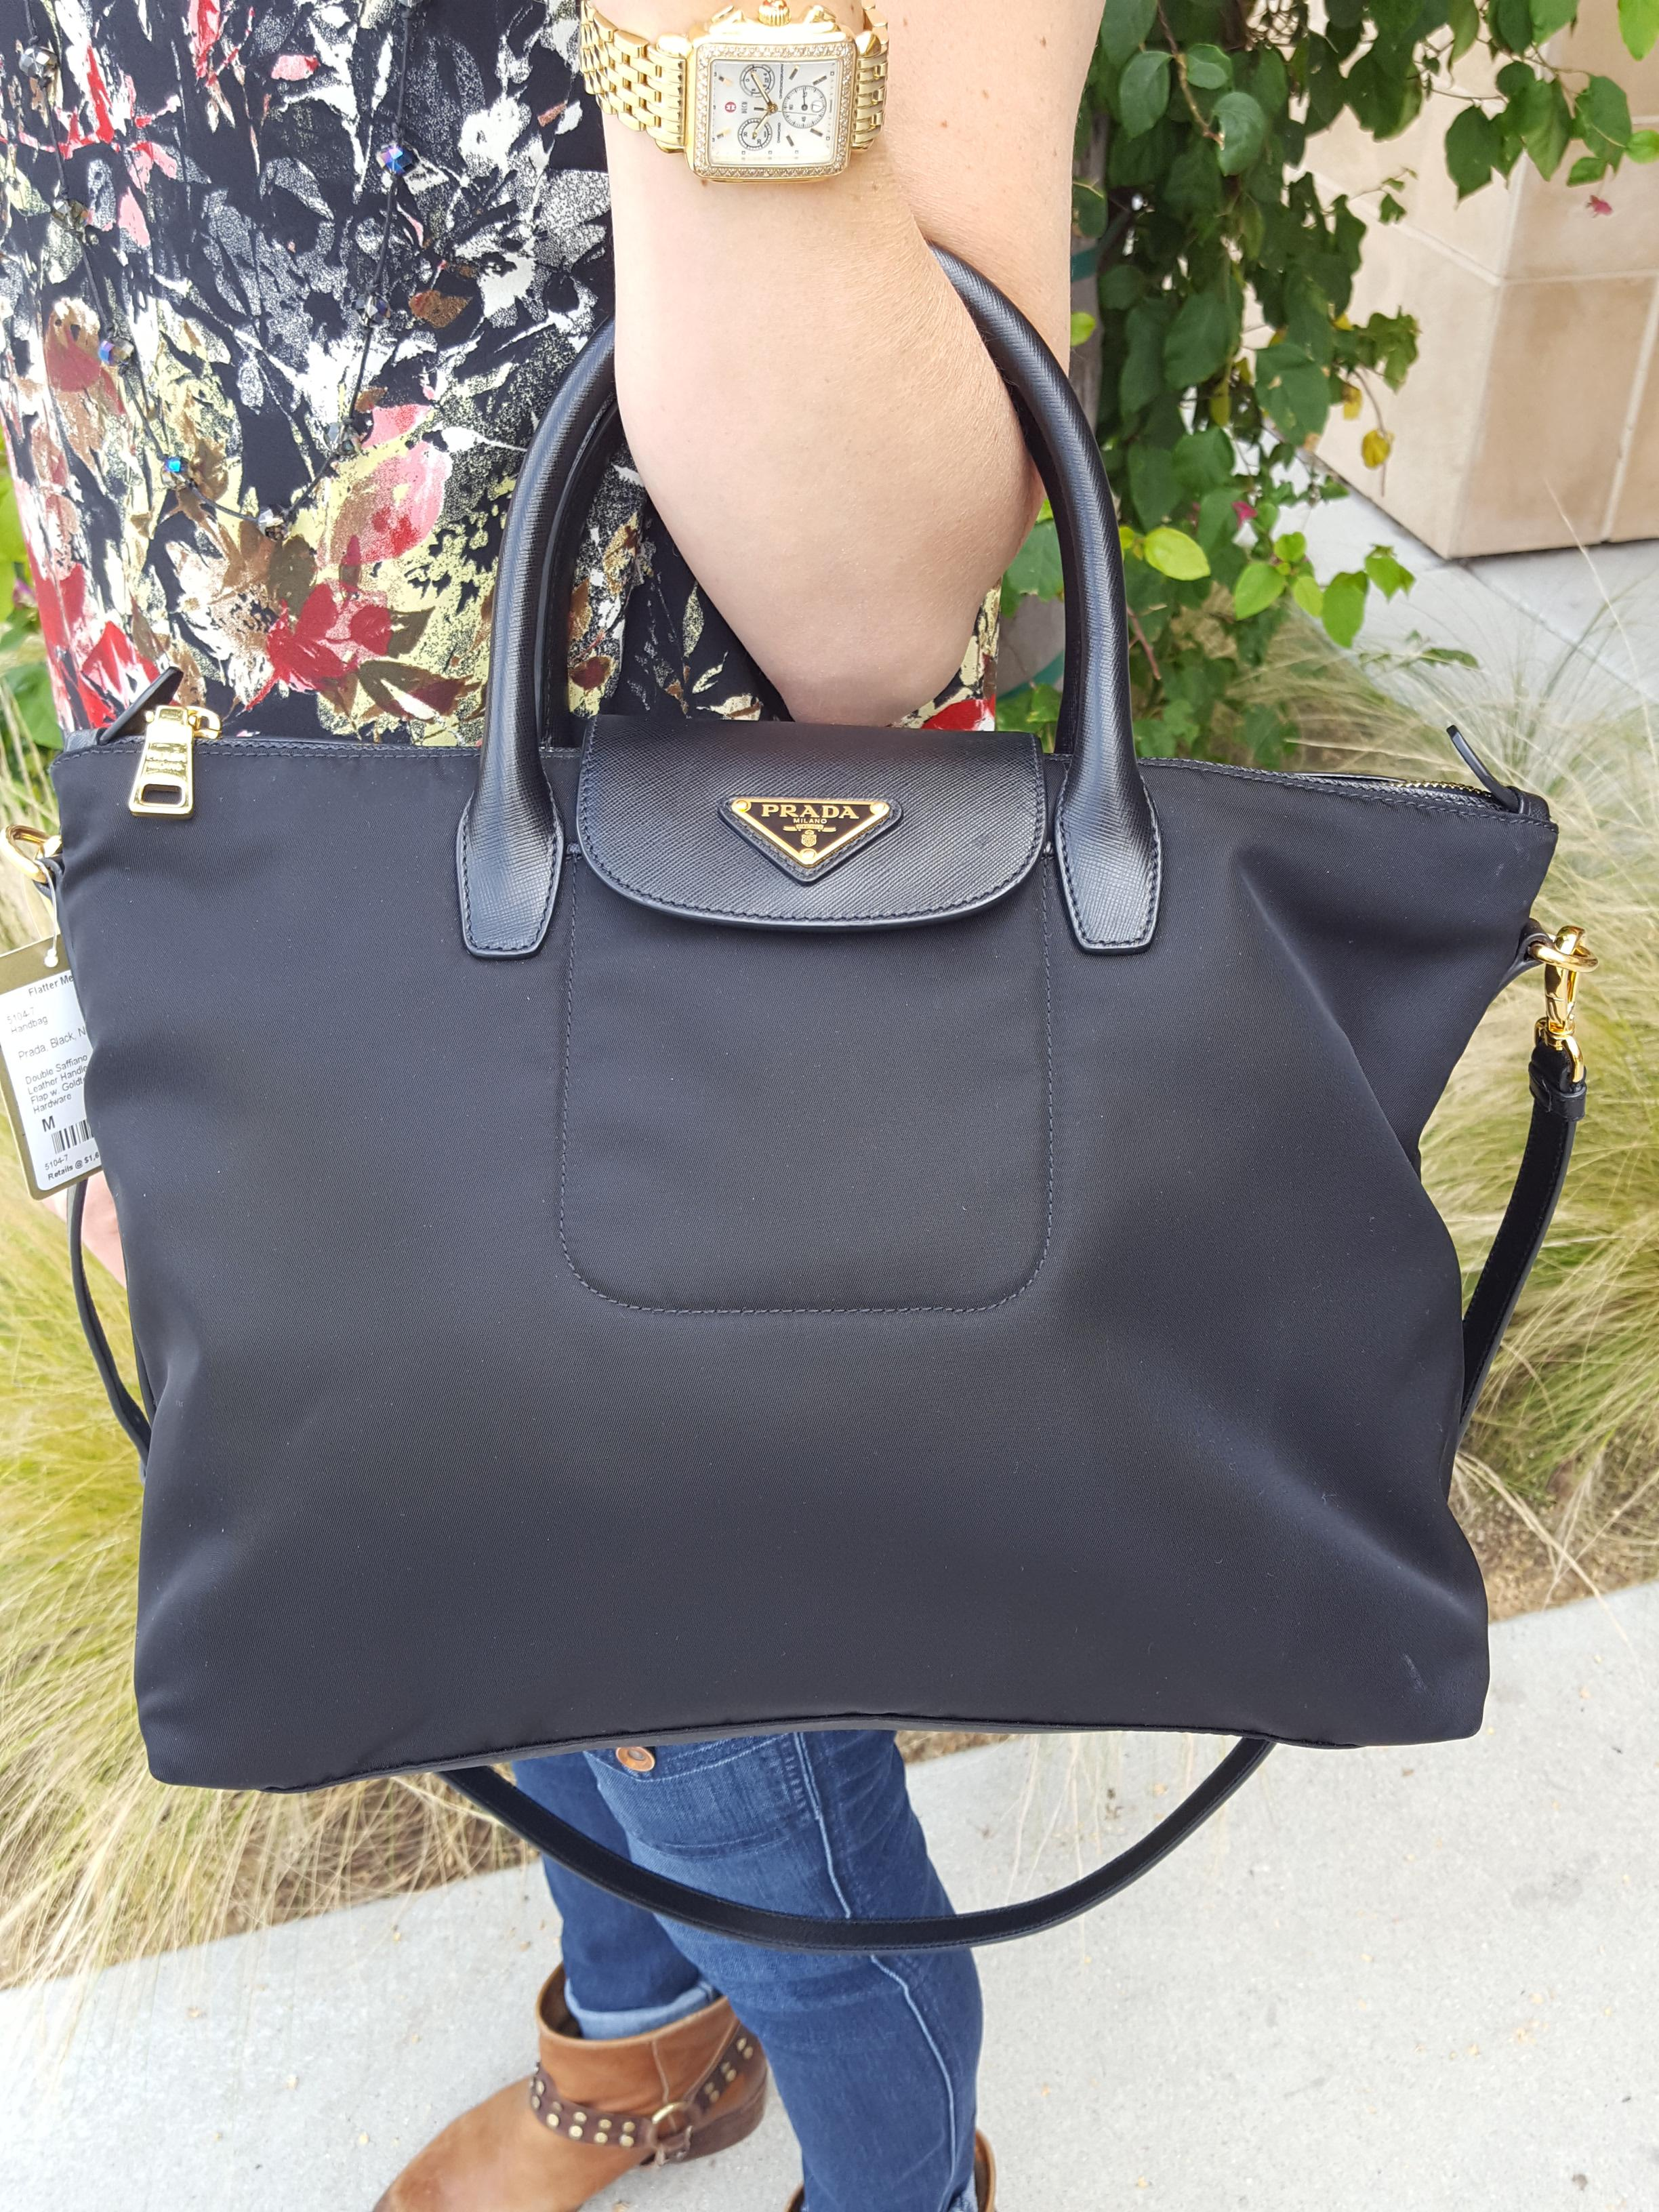 PRADA~ Black, Nylon, Saffiano Leather Purses, Handbags Price: $950.68